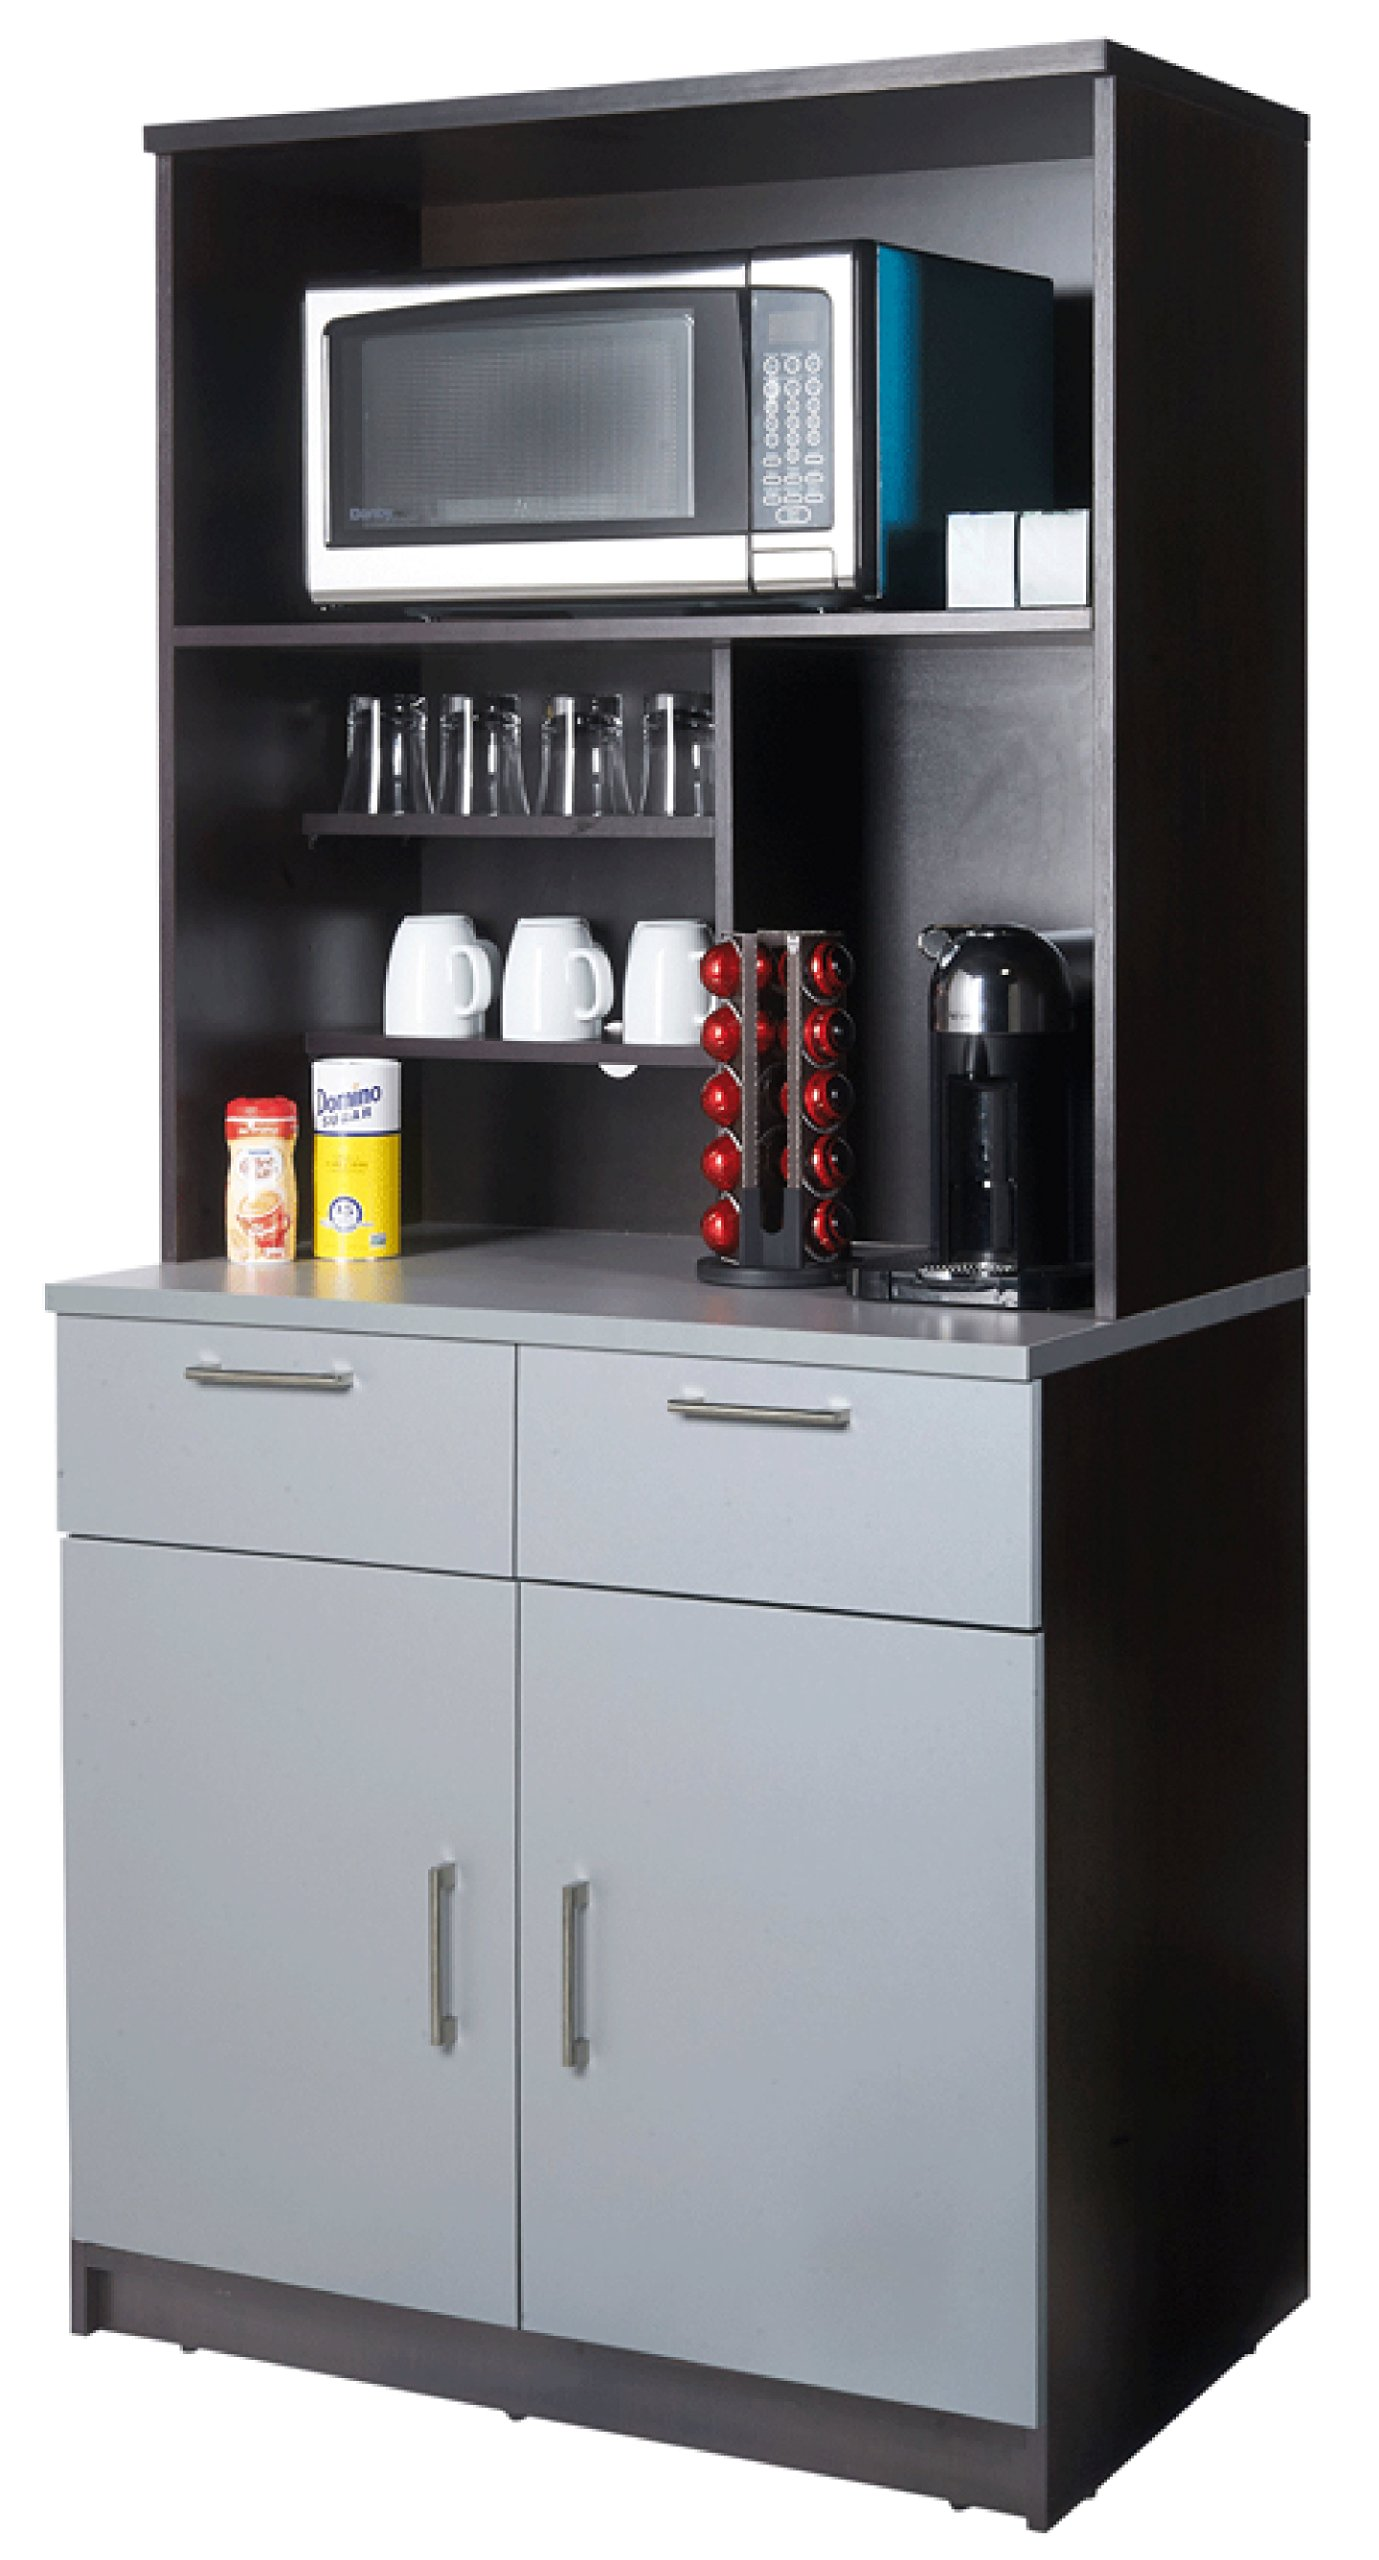 Coffee Kitchen Lunch Break Room Cabinets Model 4231 BREAKTIME 2 Piece Group Color Espresso/Silver Metalic - Factory Assembled (NOT RTA) Furniture Items ONLY. by Breaktime